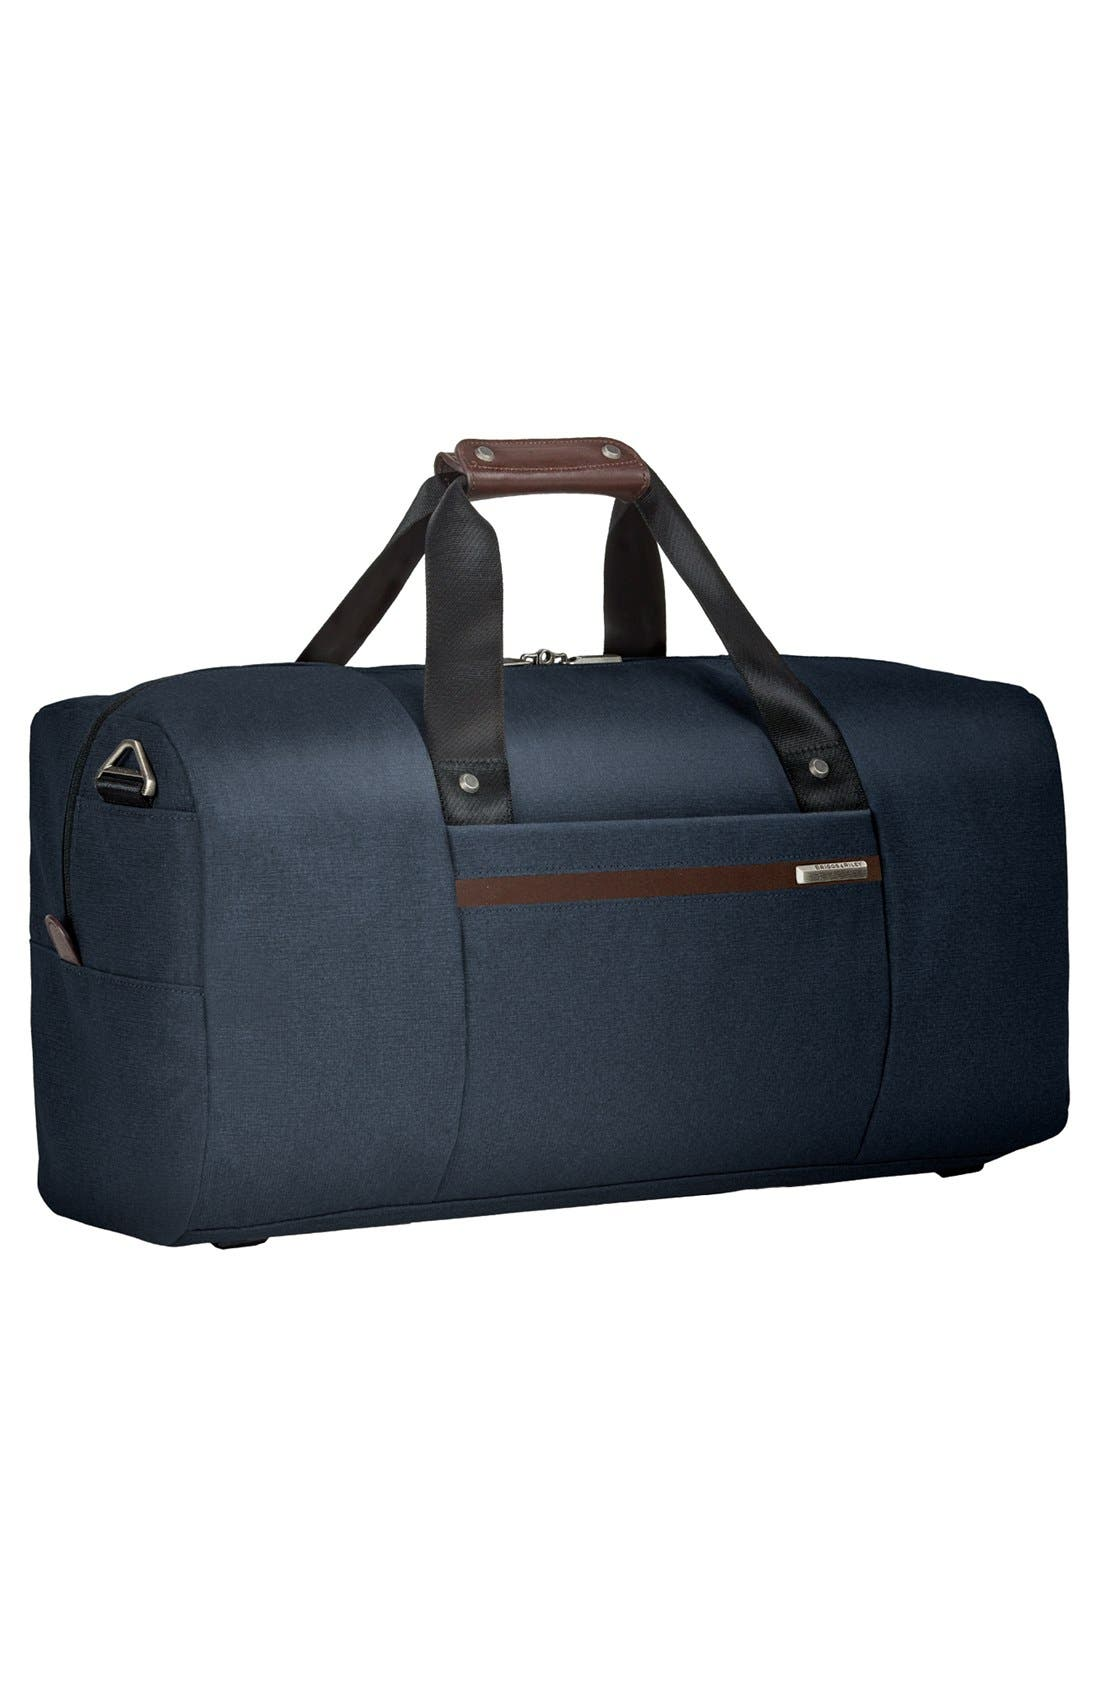 Kinzie Street - Simple Duffel Bag,                             Alternate thumbnail 2, color,                             Navy Blue